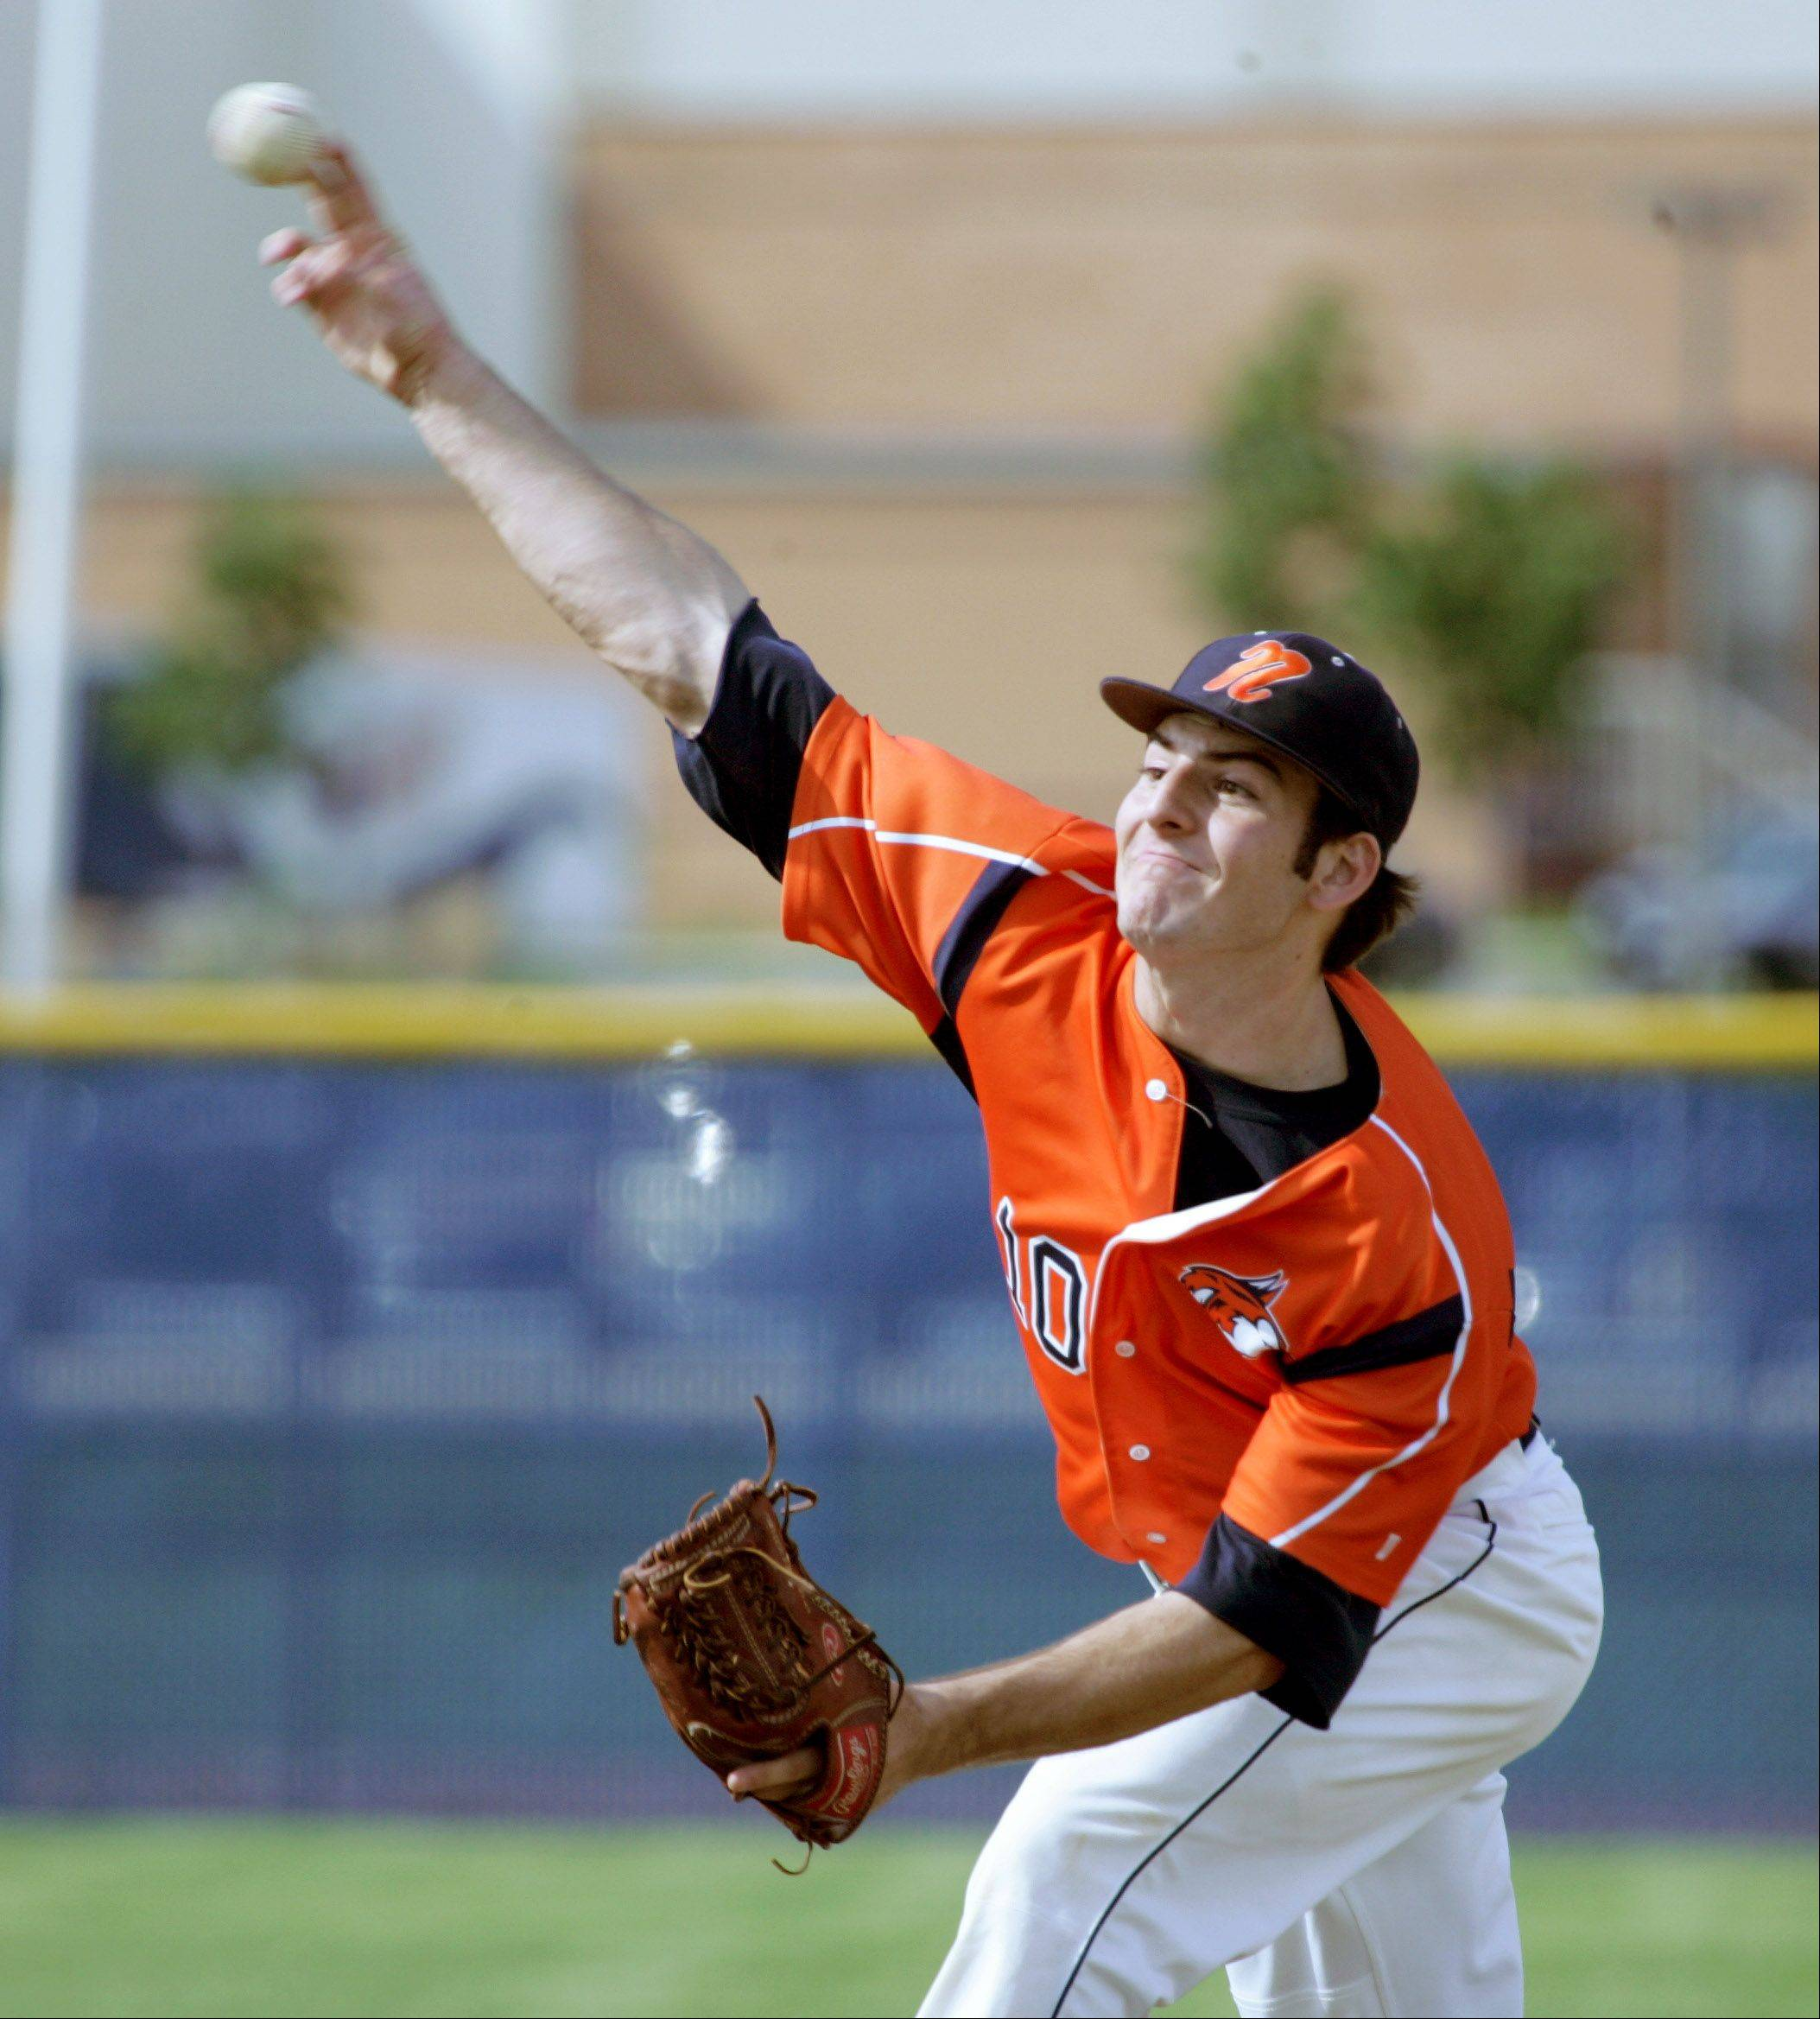 Mariano Long of Naperville North pitches against Downers Grove North .